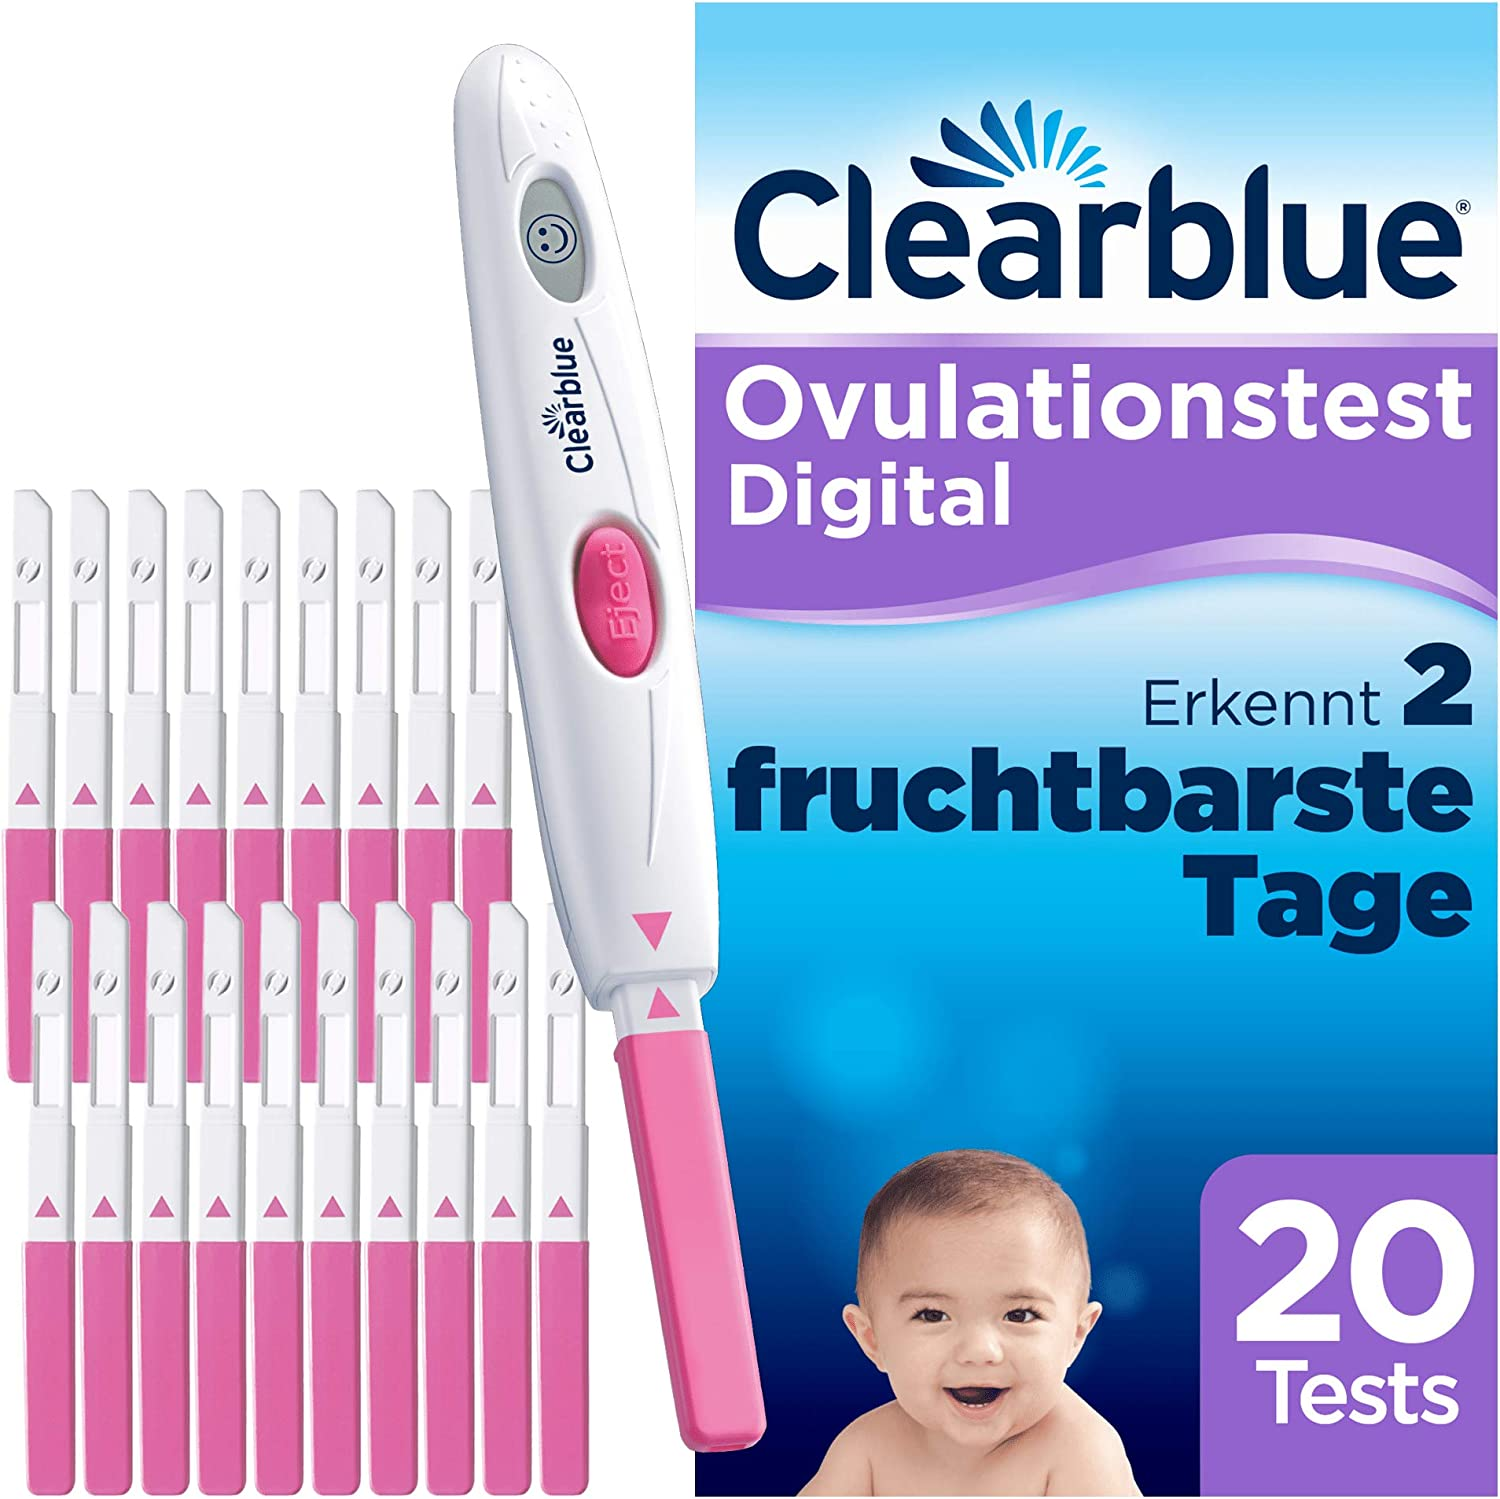 Clearblue Ovulationstest Lila